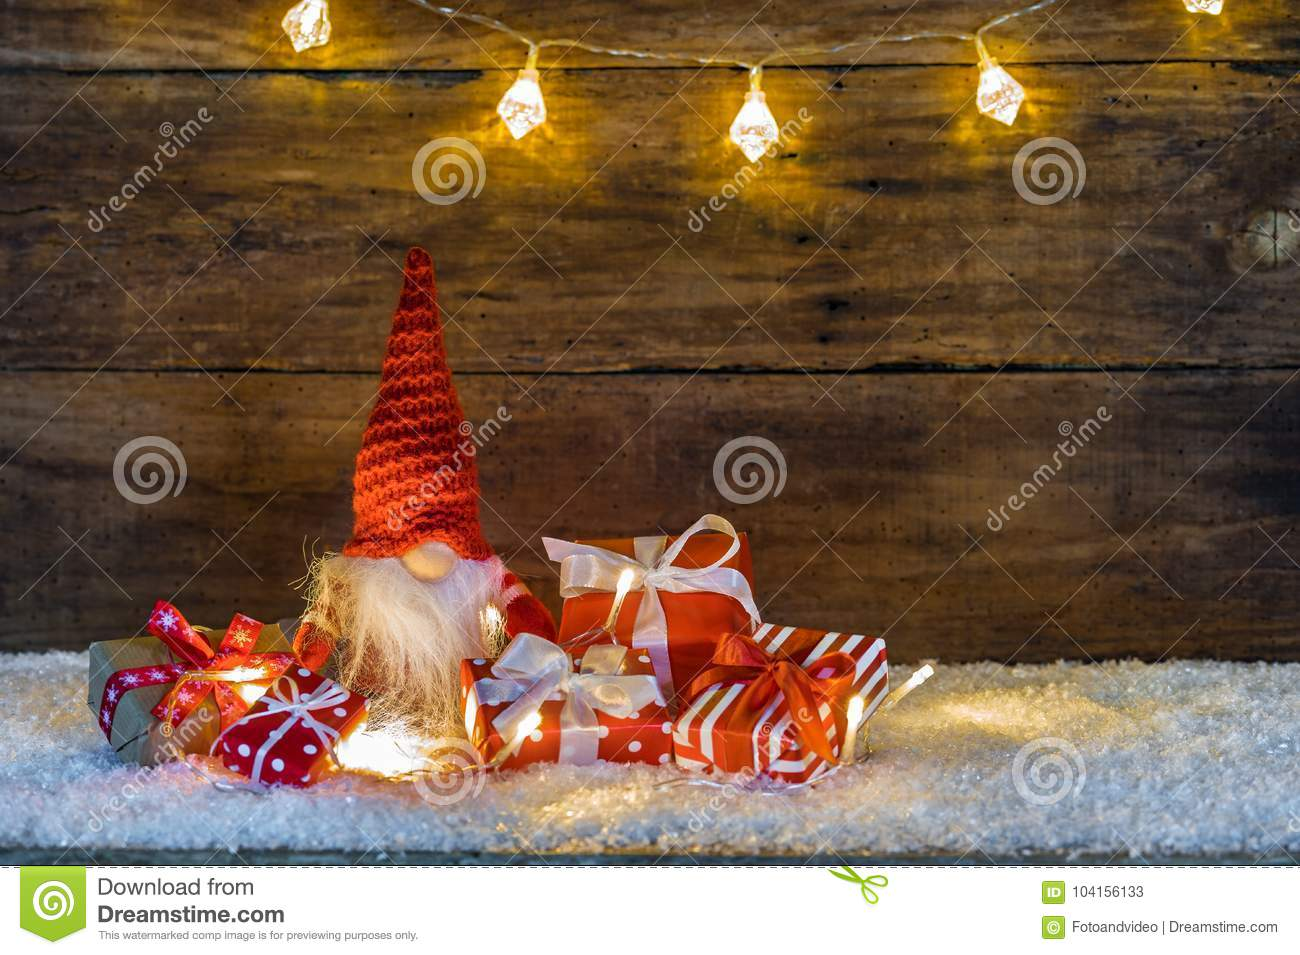 Christmas Gifts With Funny Santa Claus Gnome Stock Image - Image of ...